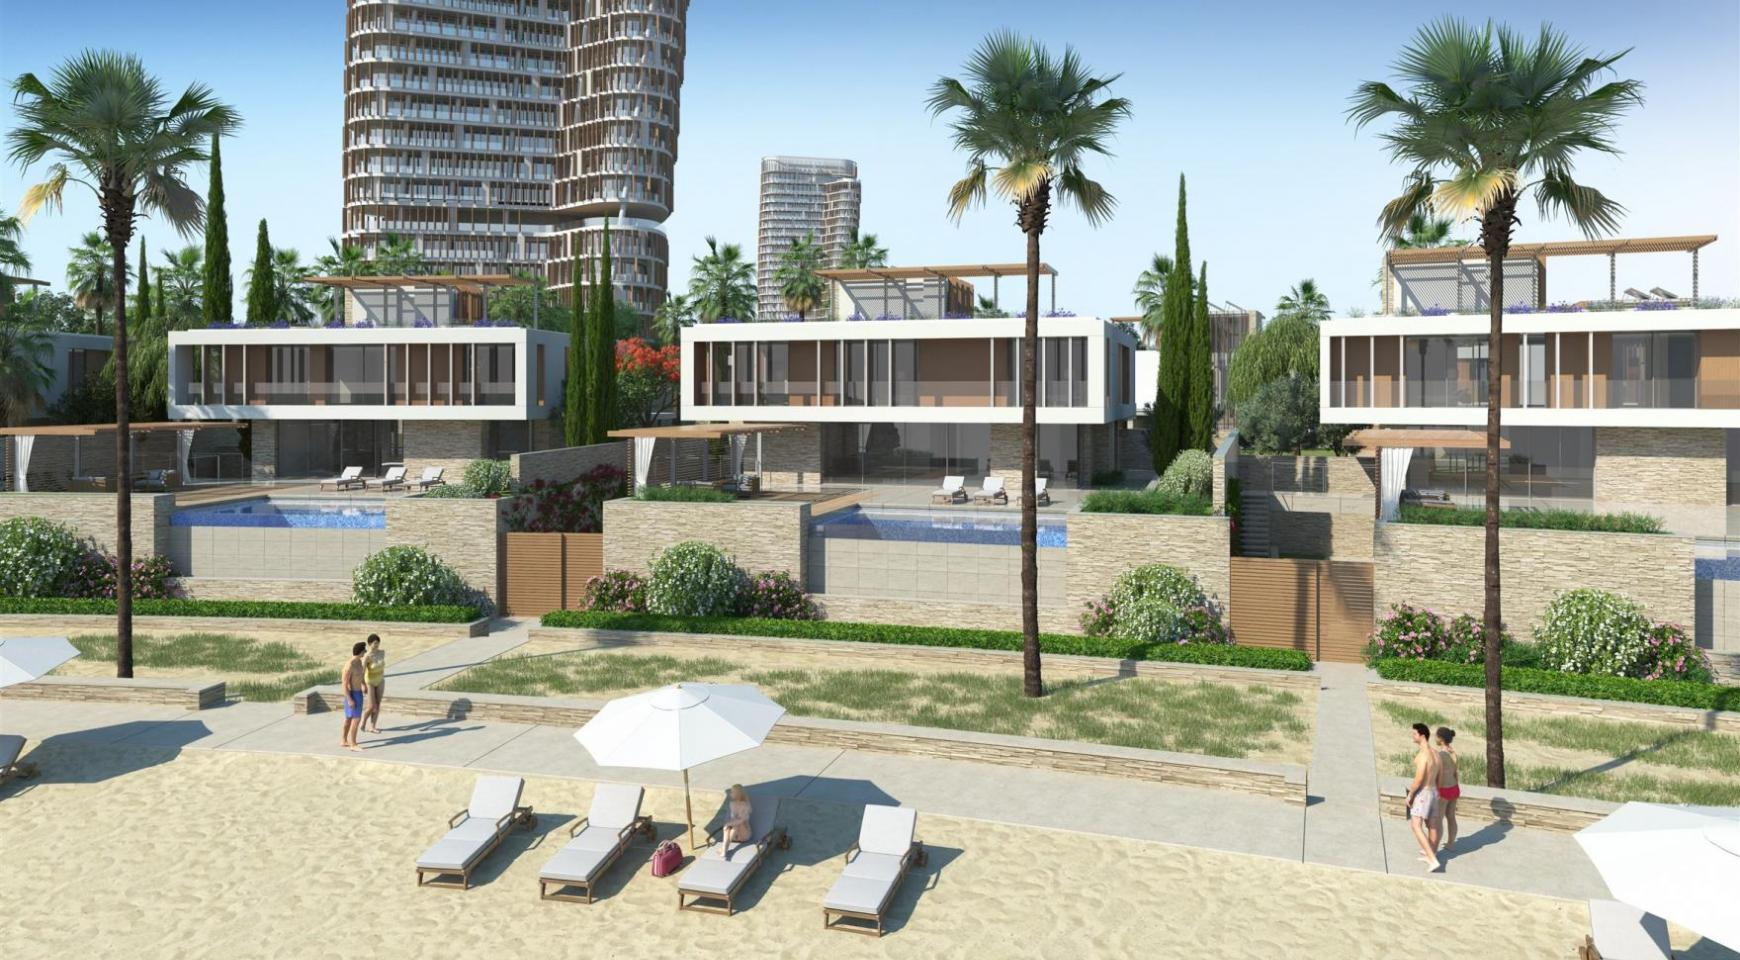 Stunning 3 Bedroom Villa in an Exclusive Project by the Sea - 3